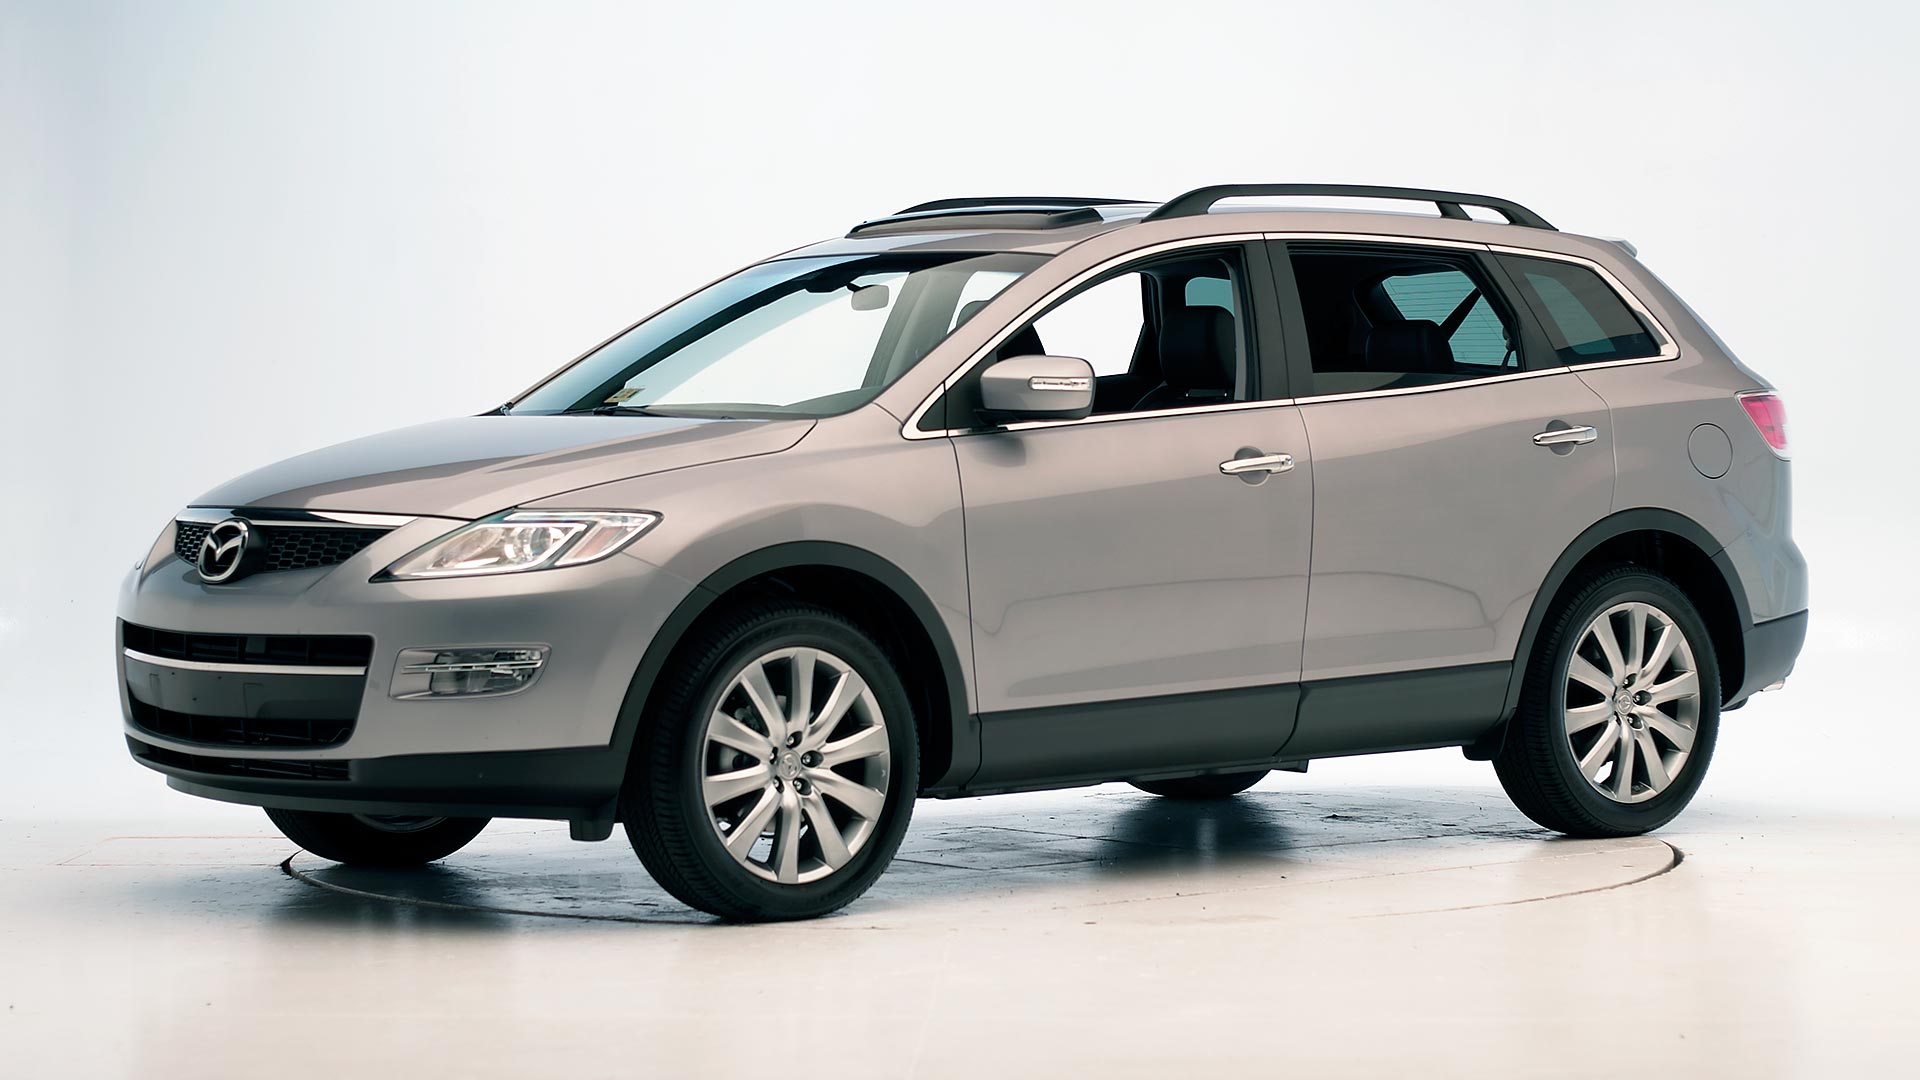 2008 Mazda CX-9 4-door SUV